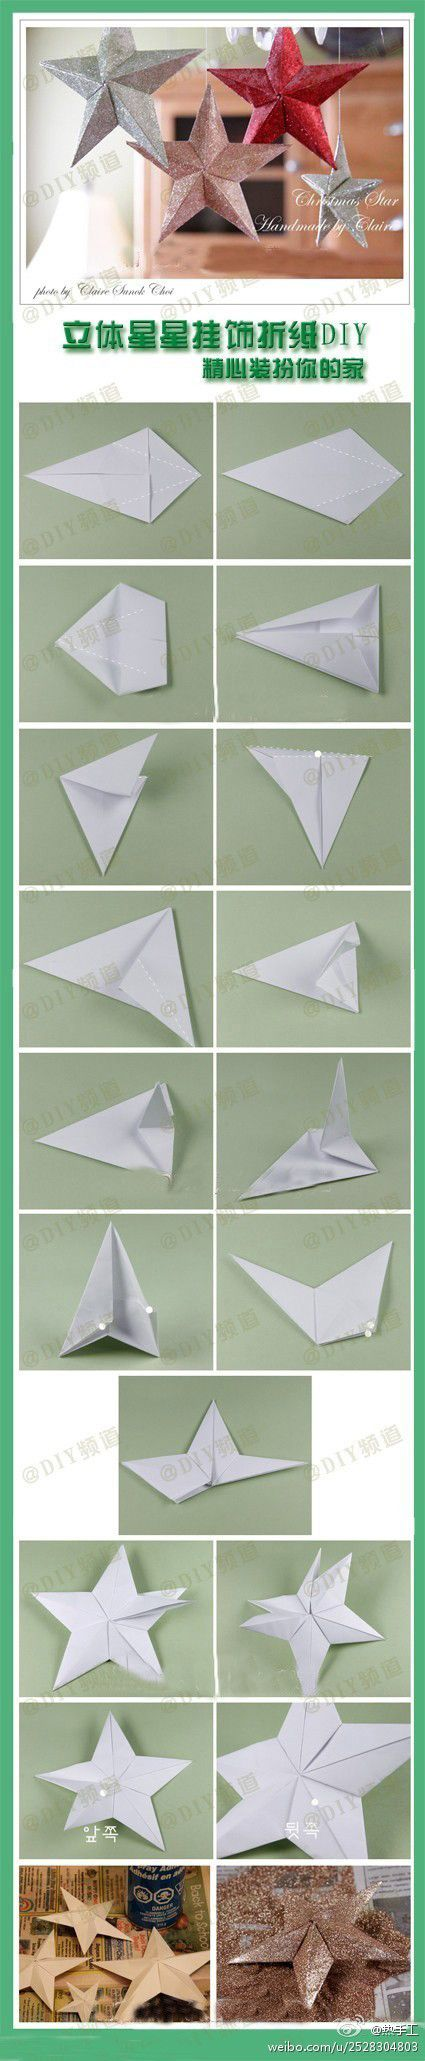 And here's some easy-folding stars to make with the moon hanger.